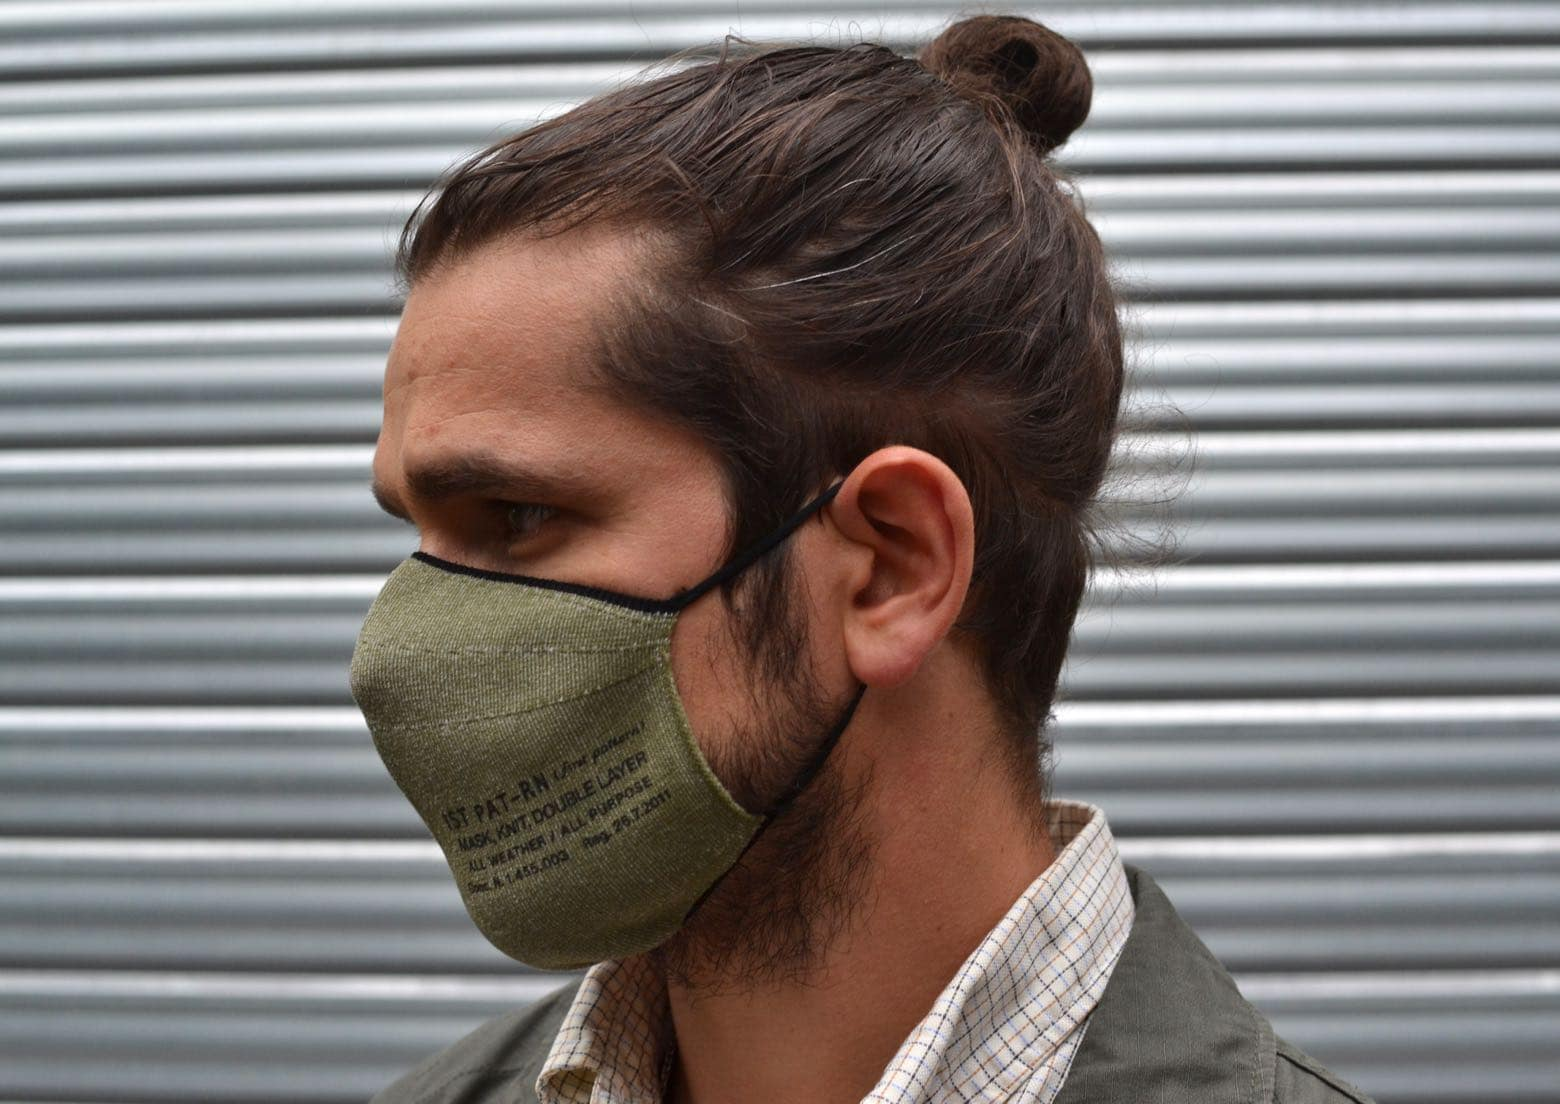 1st pat-rn knit double layer mask & engineered garments bedford jacket ripstop conseil style homme porter un masque